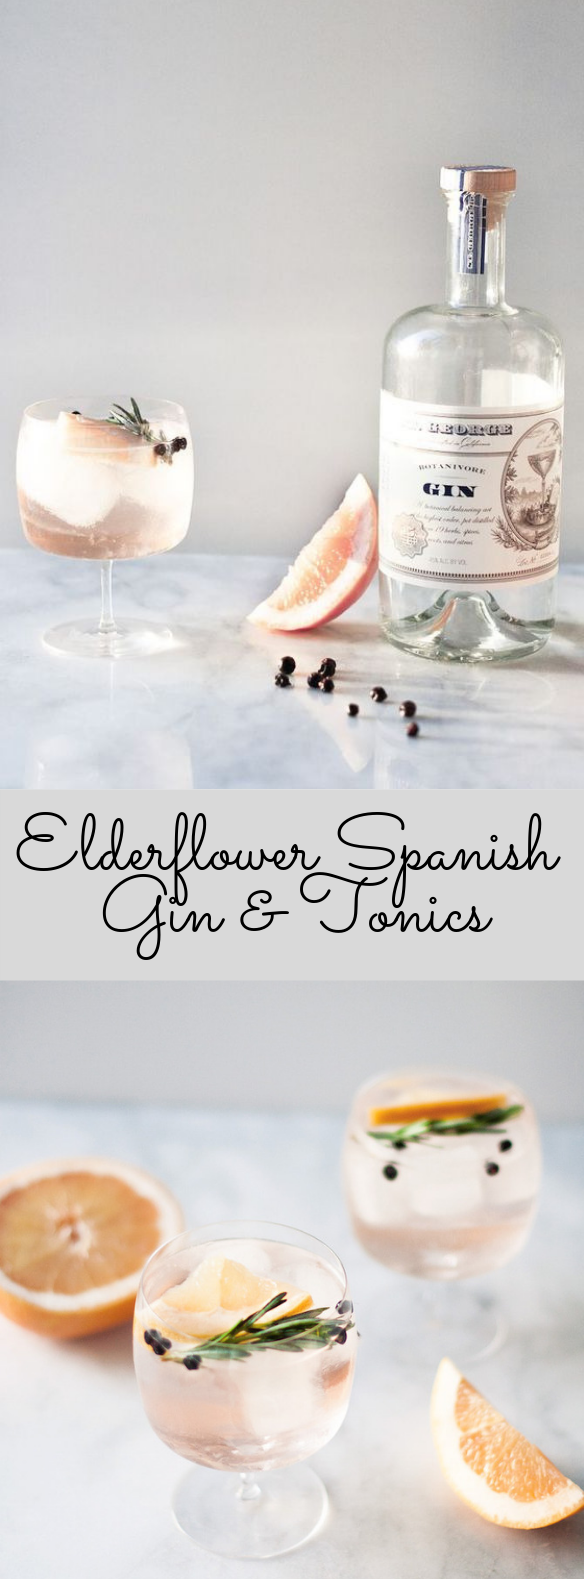 Elderflower Spanish Gin & Tonics #Cocktail #ValentinDay #bestgincocktails